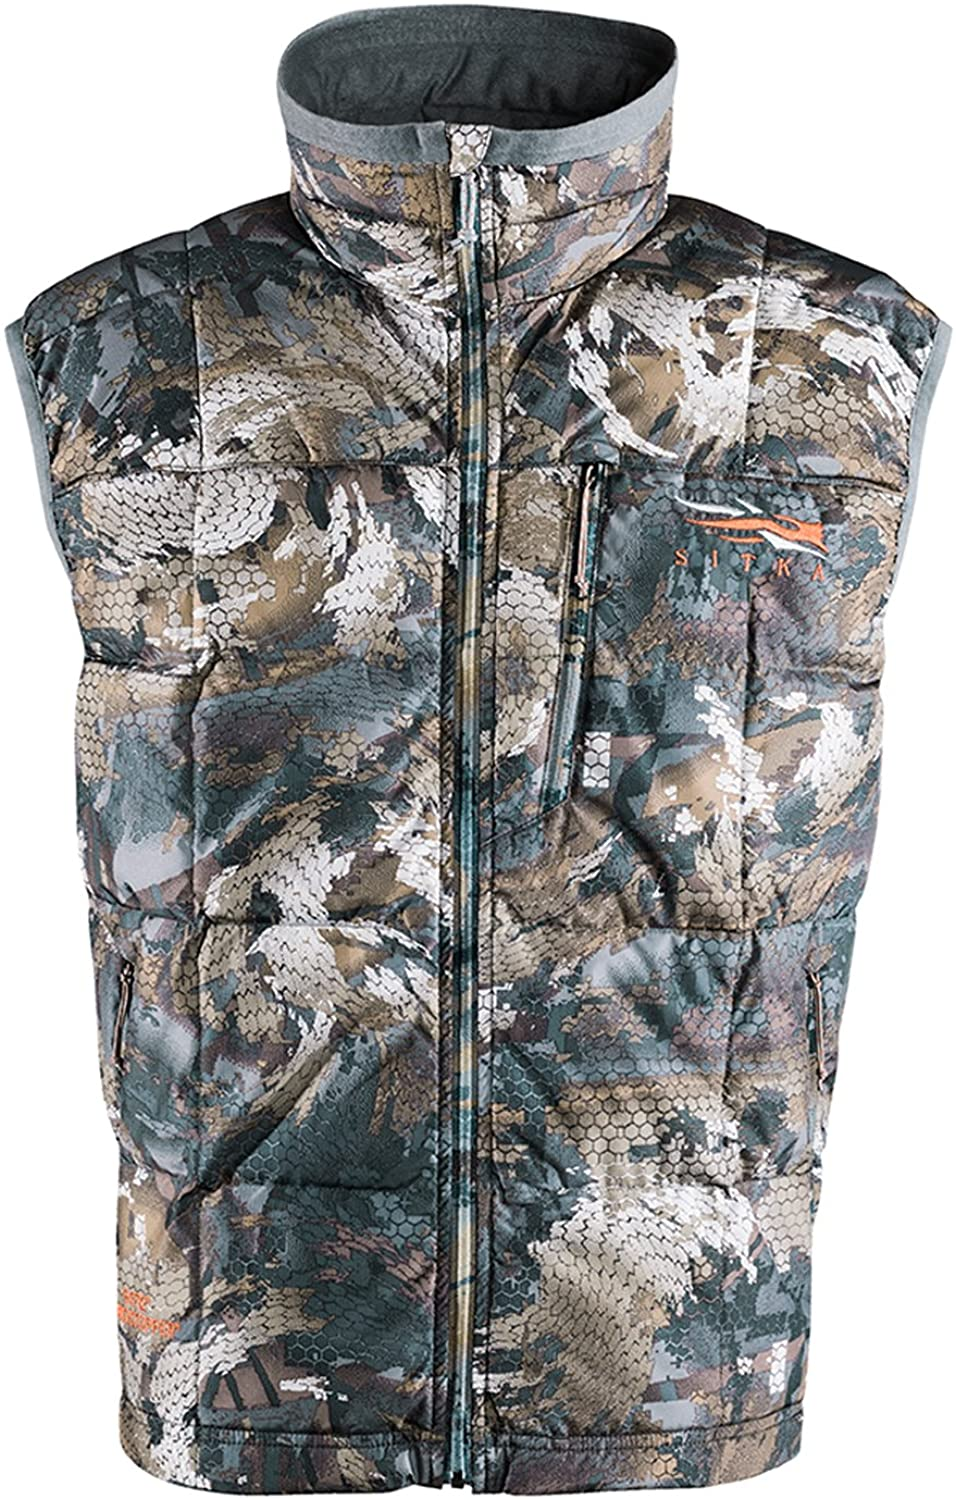 SITKA Men's Fahrenheit Windproof Insulated Hunting Vest